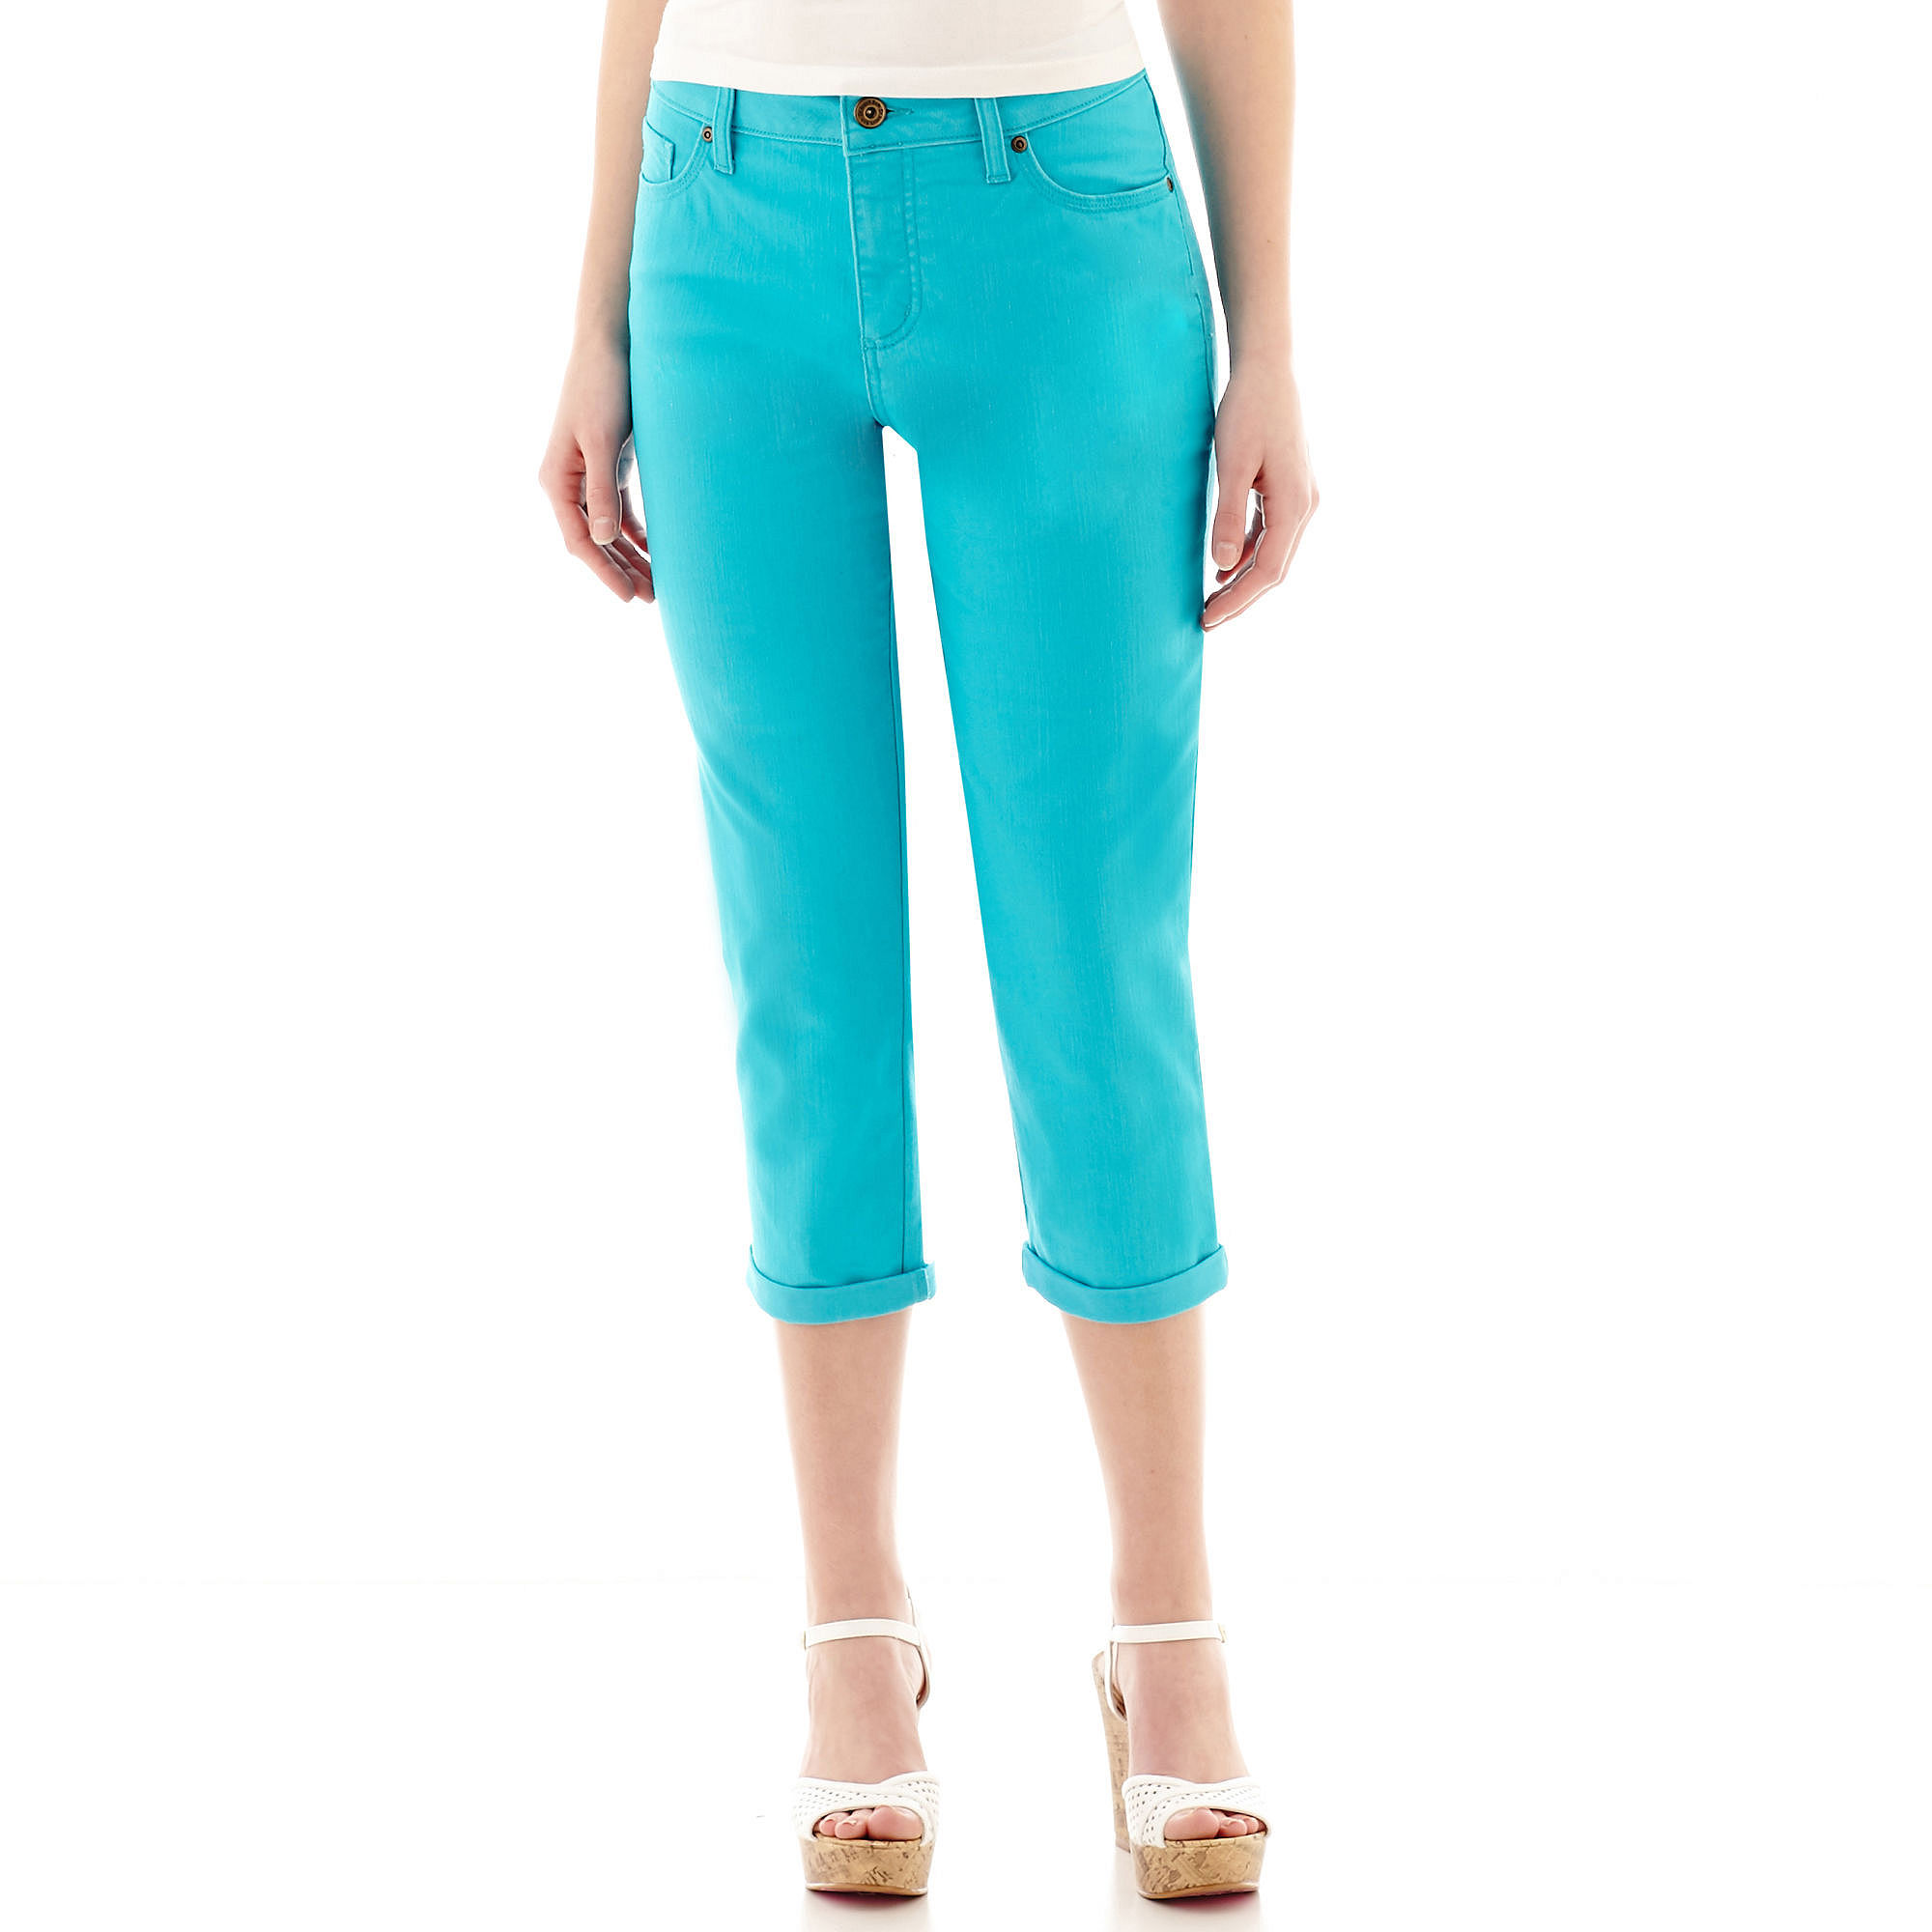 St. John's Bay Secretly Slender Five-Pocket Denim Cropped Jeans